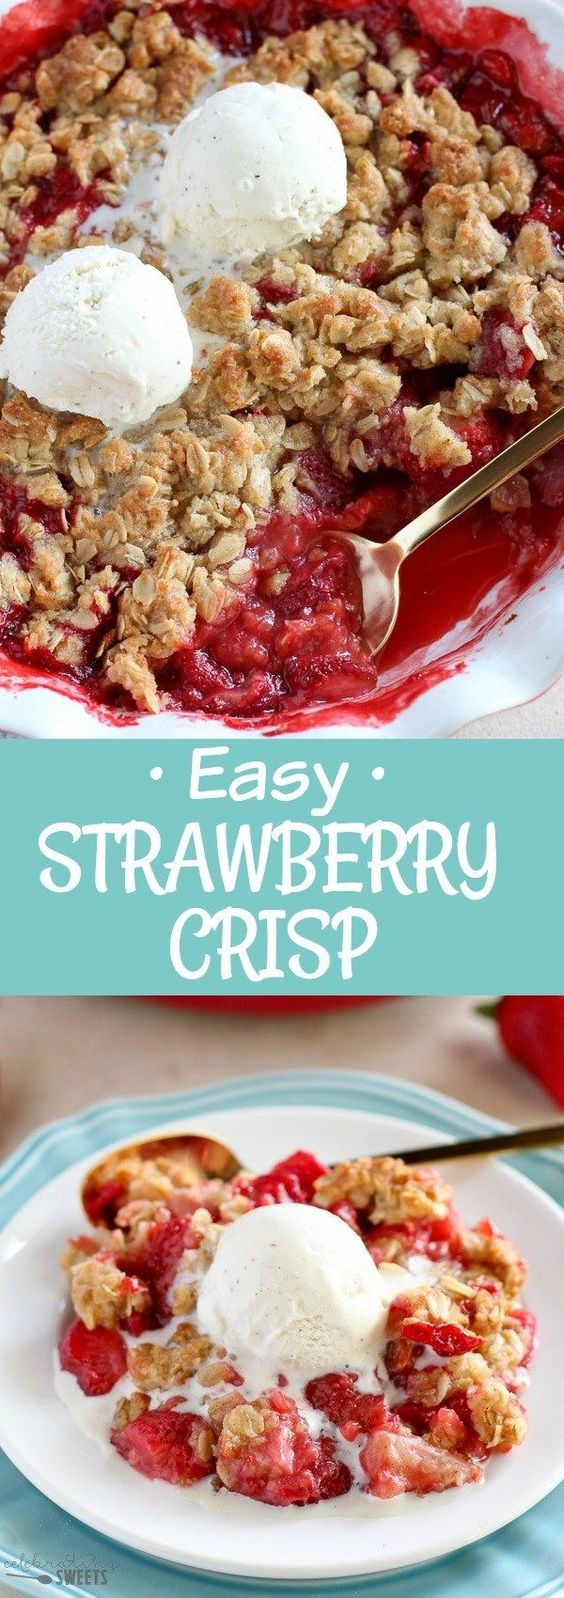 Easy Strawberry Crisp - Sweet and juicy strawberries topped with a buttery brown sugar oat crumble. This delicious fruit crisp comes together in minutes and it is sure to be a crowd pleaser. #dessert #baking #strawberry #fruitcrisp #summerrecipes #strawberries